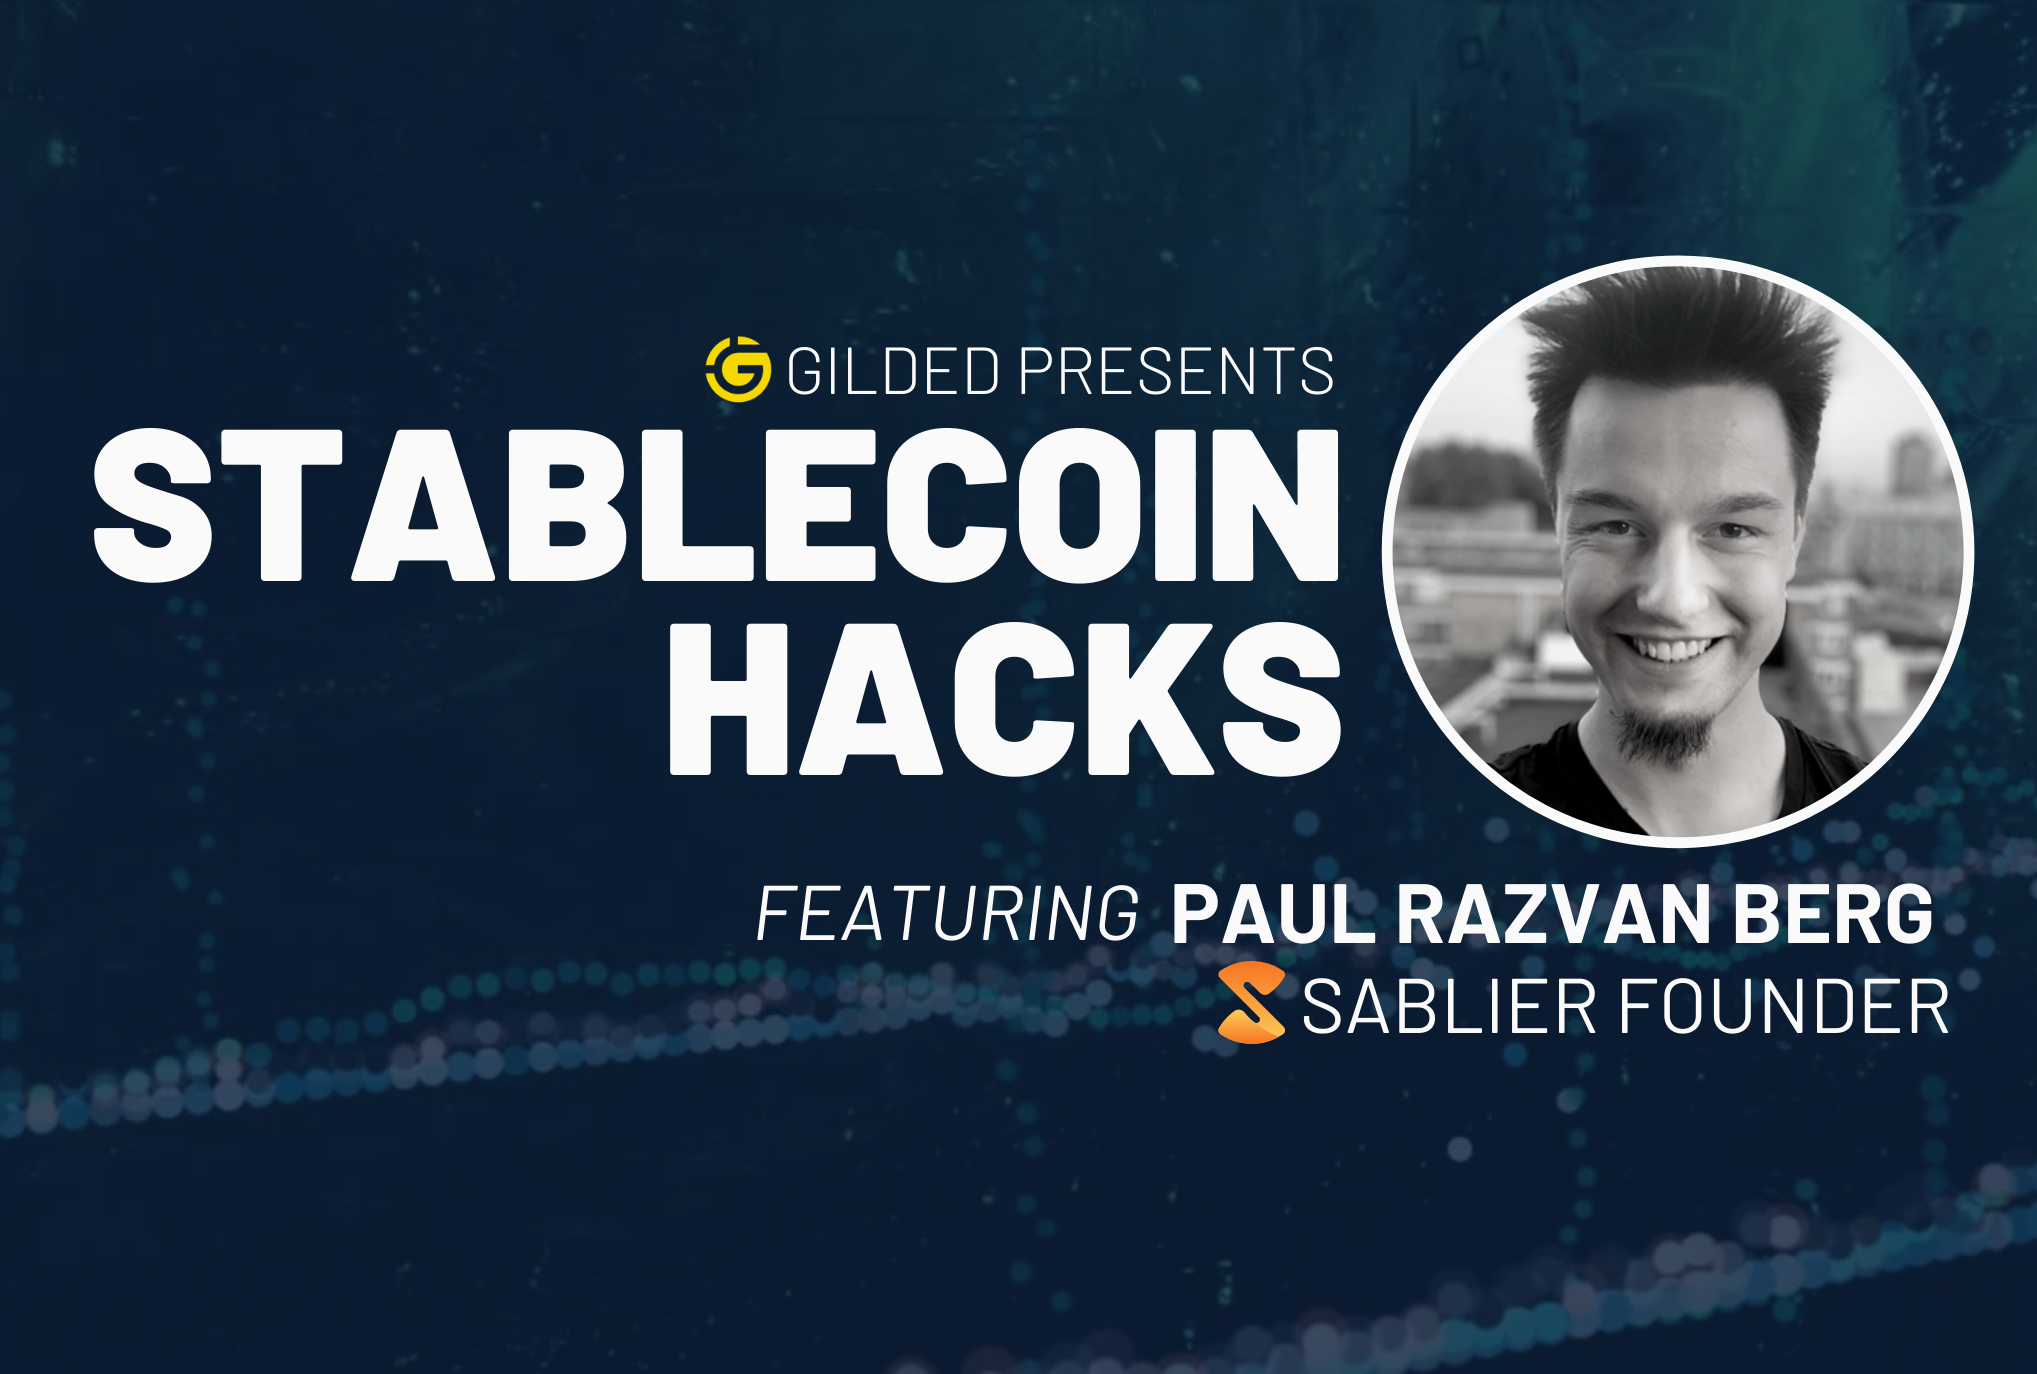 Stablecoin Hack #4: Hedge Your Foreign Exchange Risk